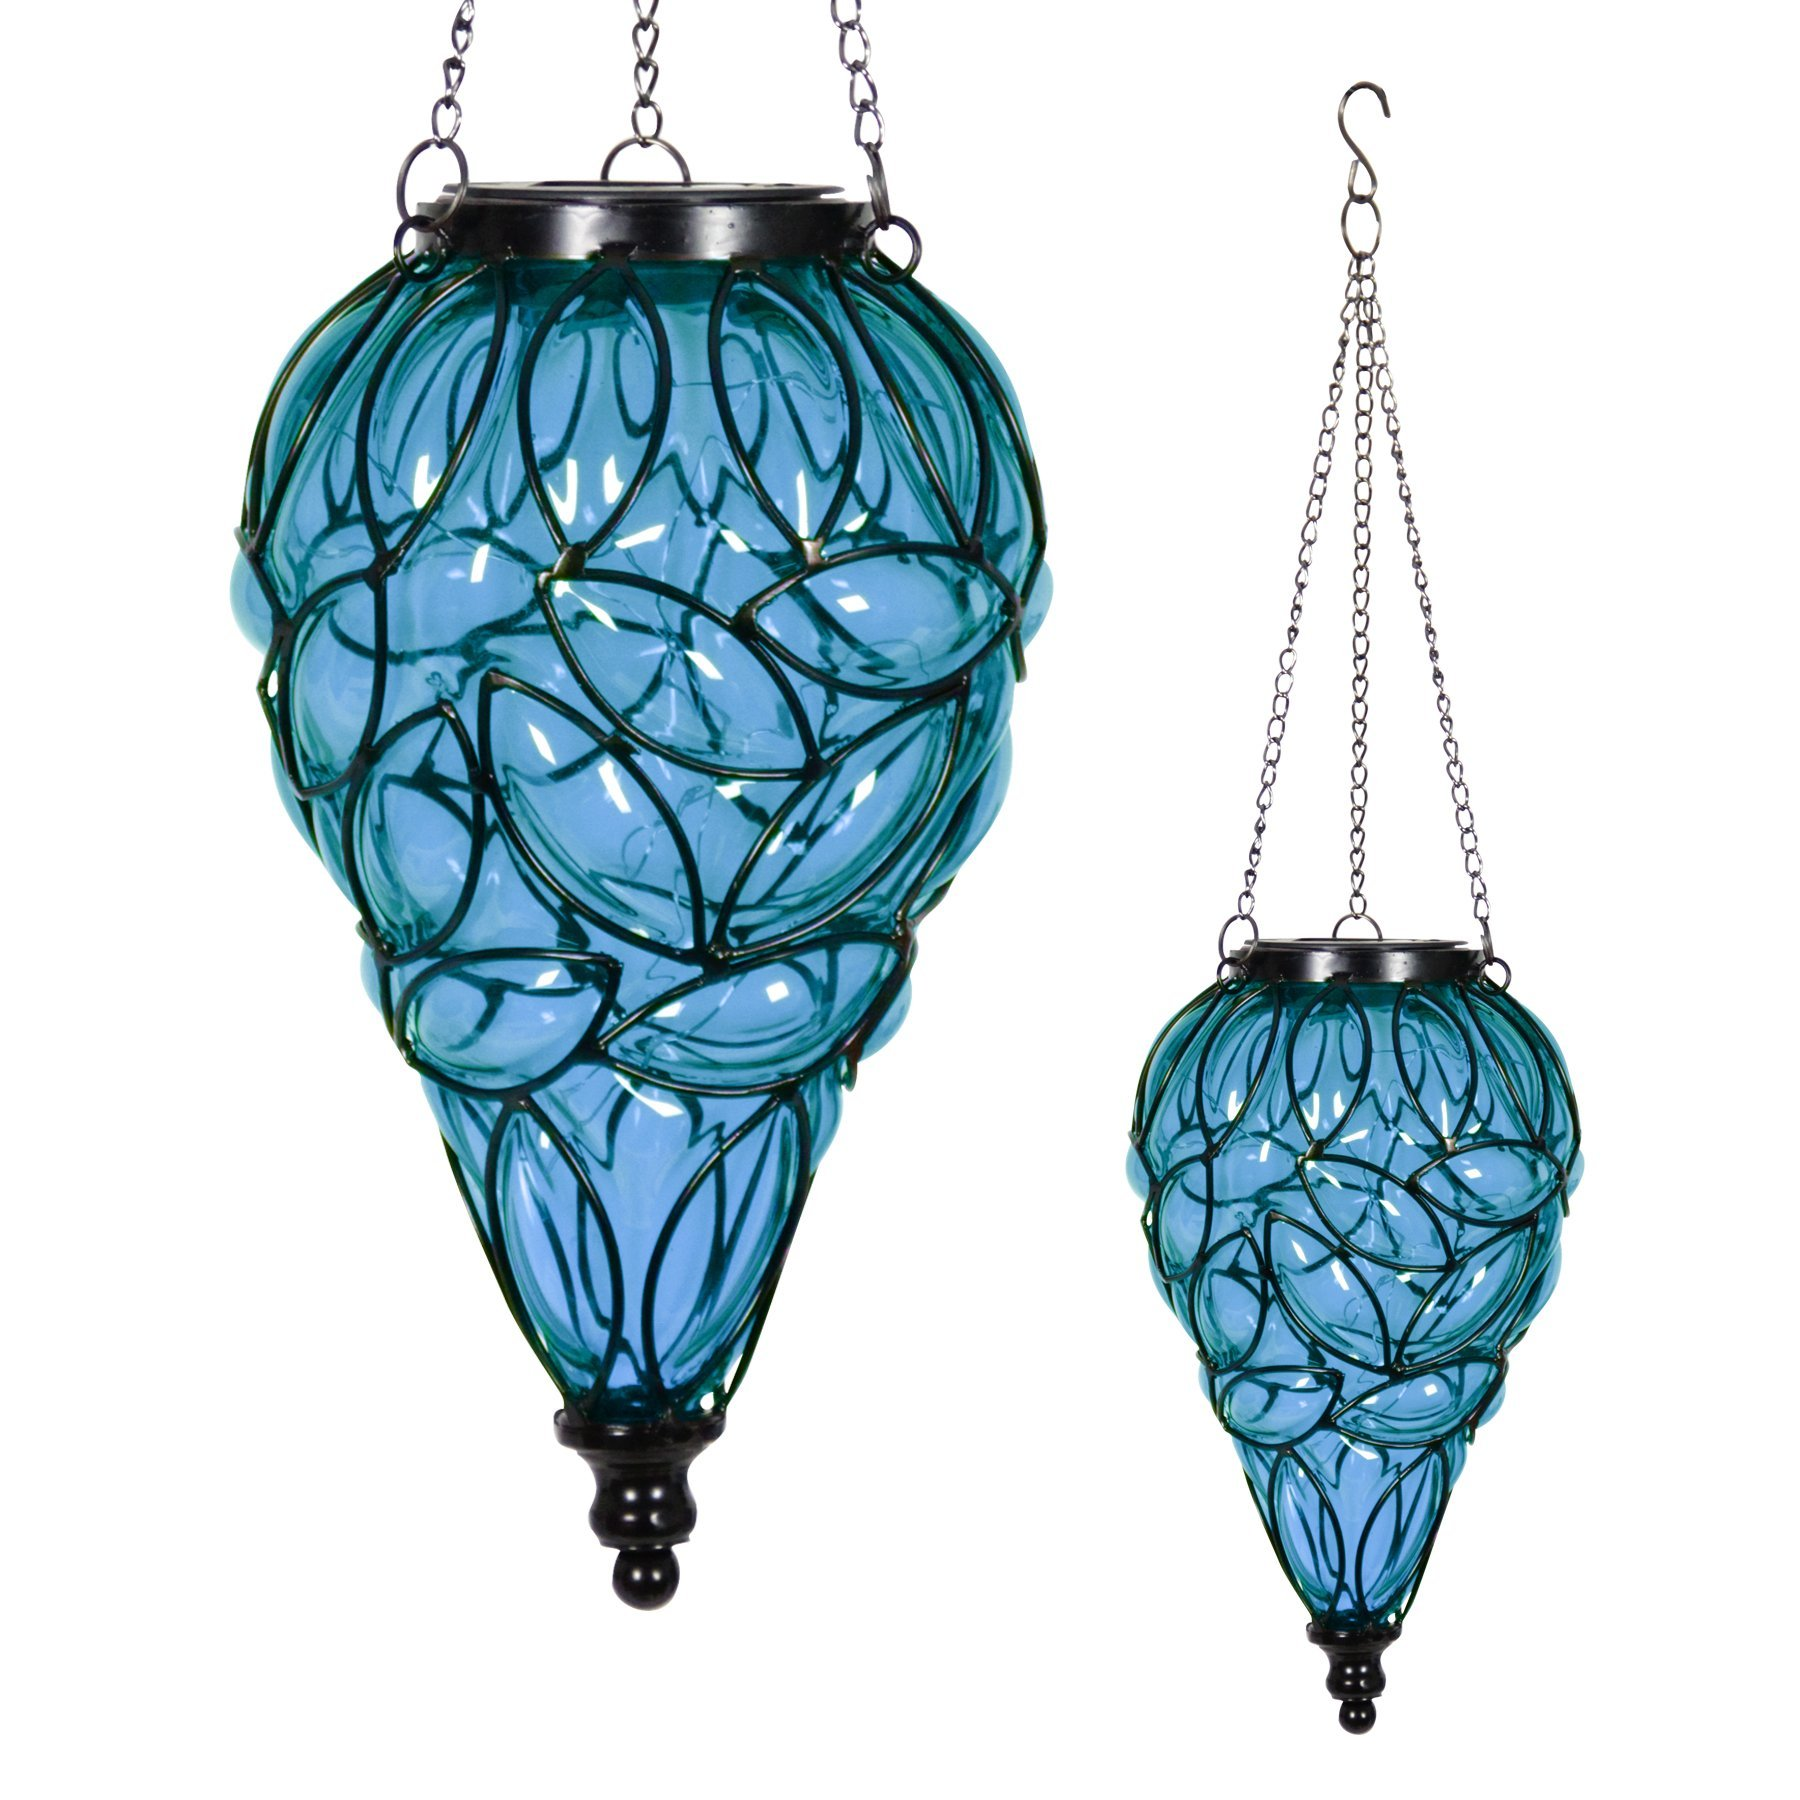 Exhart Blue Solar Lantern - Glass Tear-Shaped Hanging Lantern - Teardrop Glass Ceiling Lantern Hangs in a Metal Cage w/ 12 Blue LED Firefly Solar Lights 7'' L x 7'' W x 24'' H